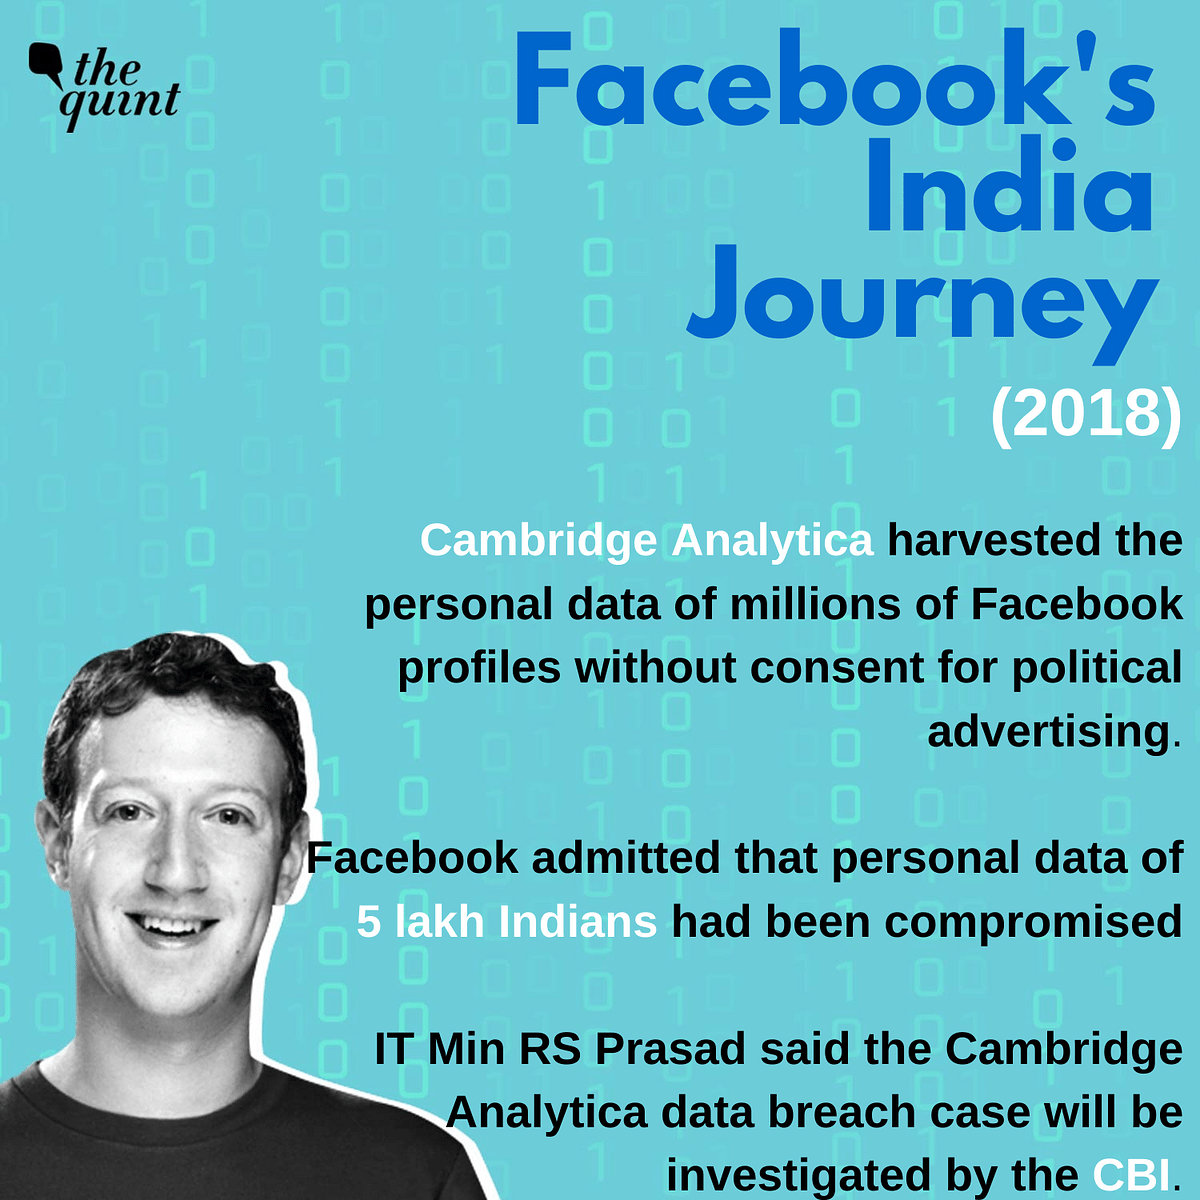 A 14-Year 'Timeline': Facebook's Roller-Coaster India Journey